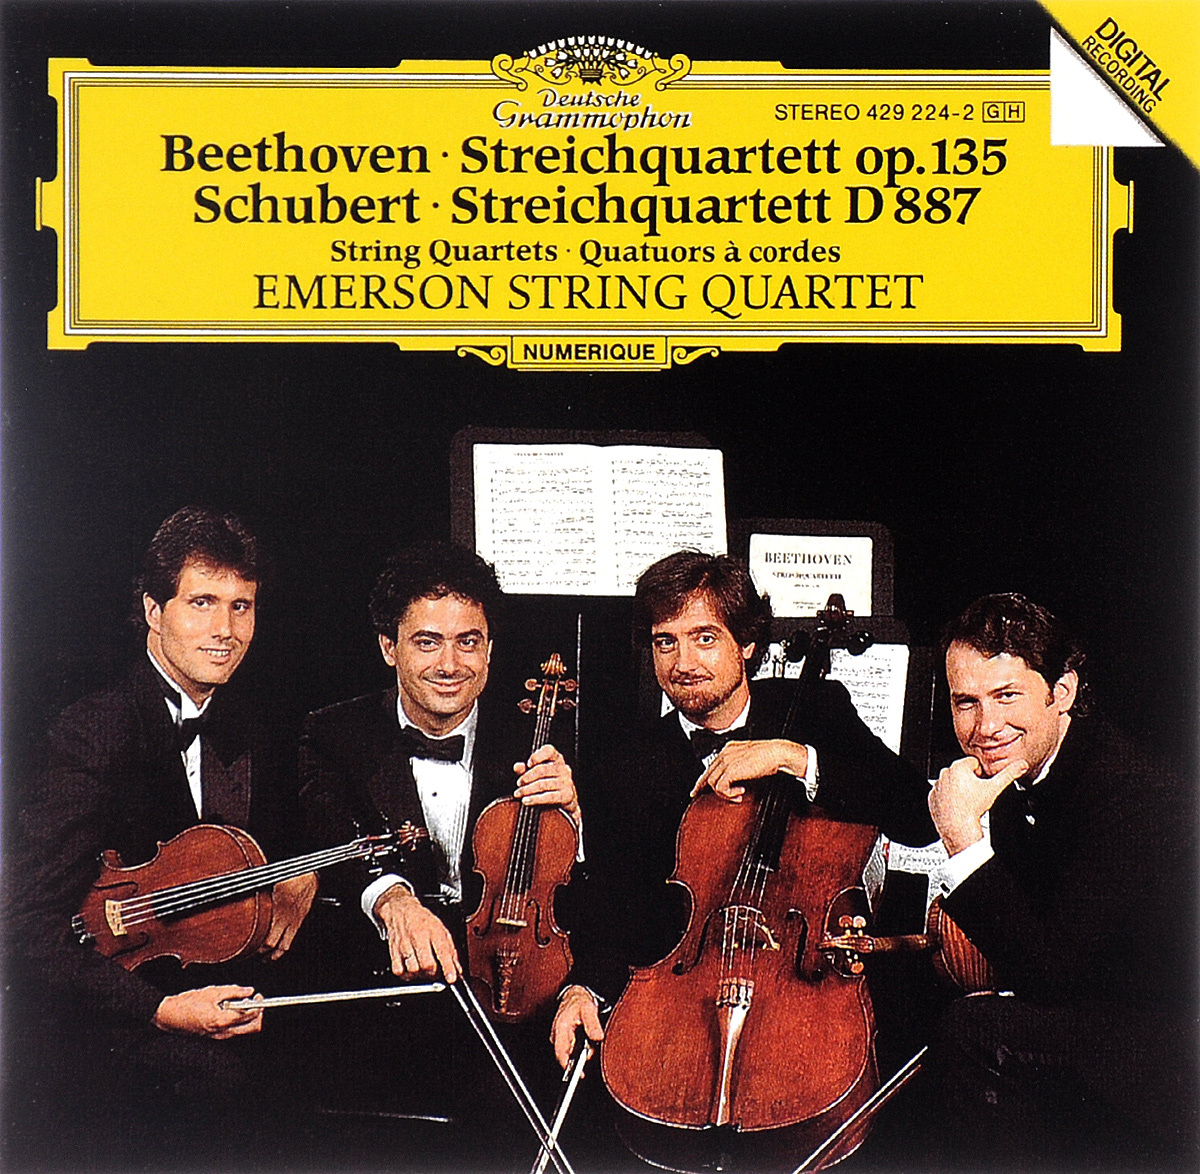 Emerson String Quartet Emerson String Quartet. Beethoven. Streichquartett Op. 135 / Schubert. Streichquartett D 887 антонин дворжак antonin dvorak vlach quartet string quartet in g major op 106 lp